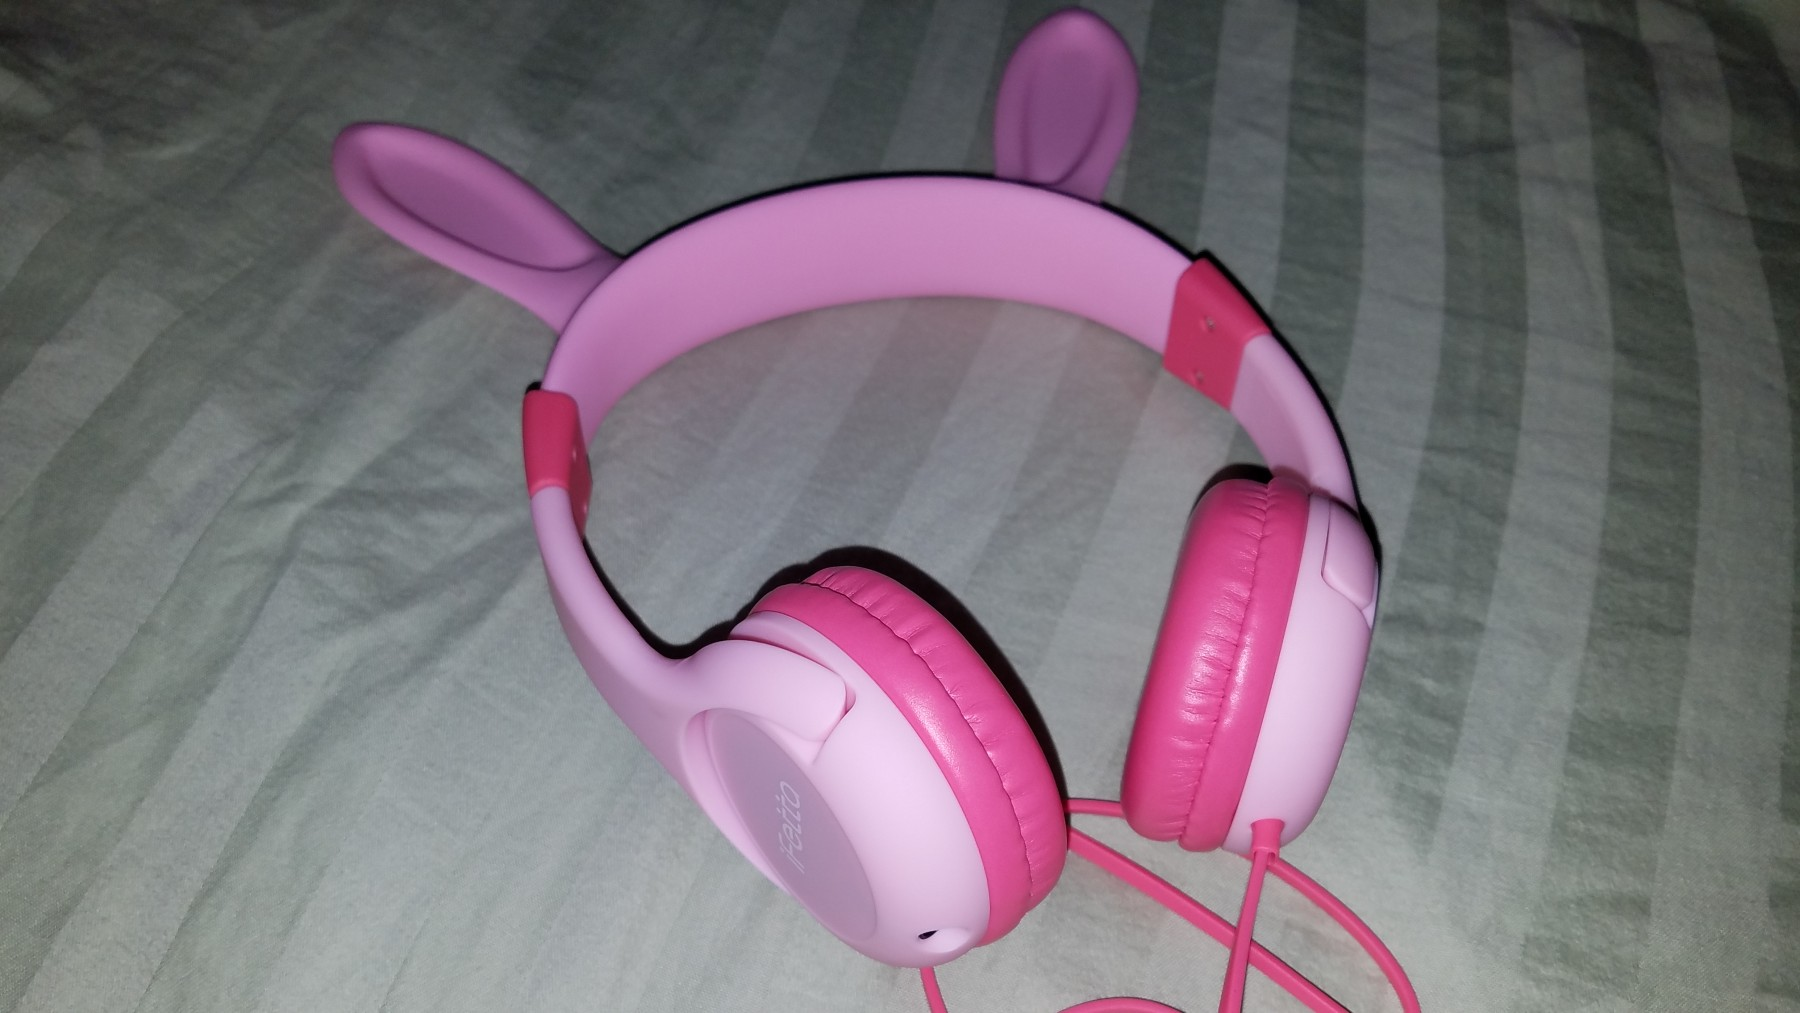 Bunny ears headphone for kids